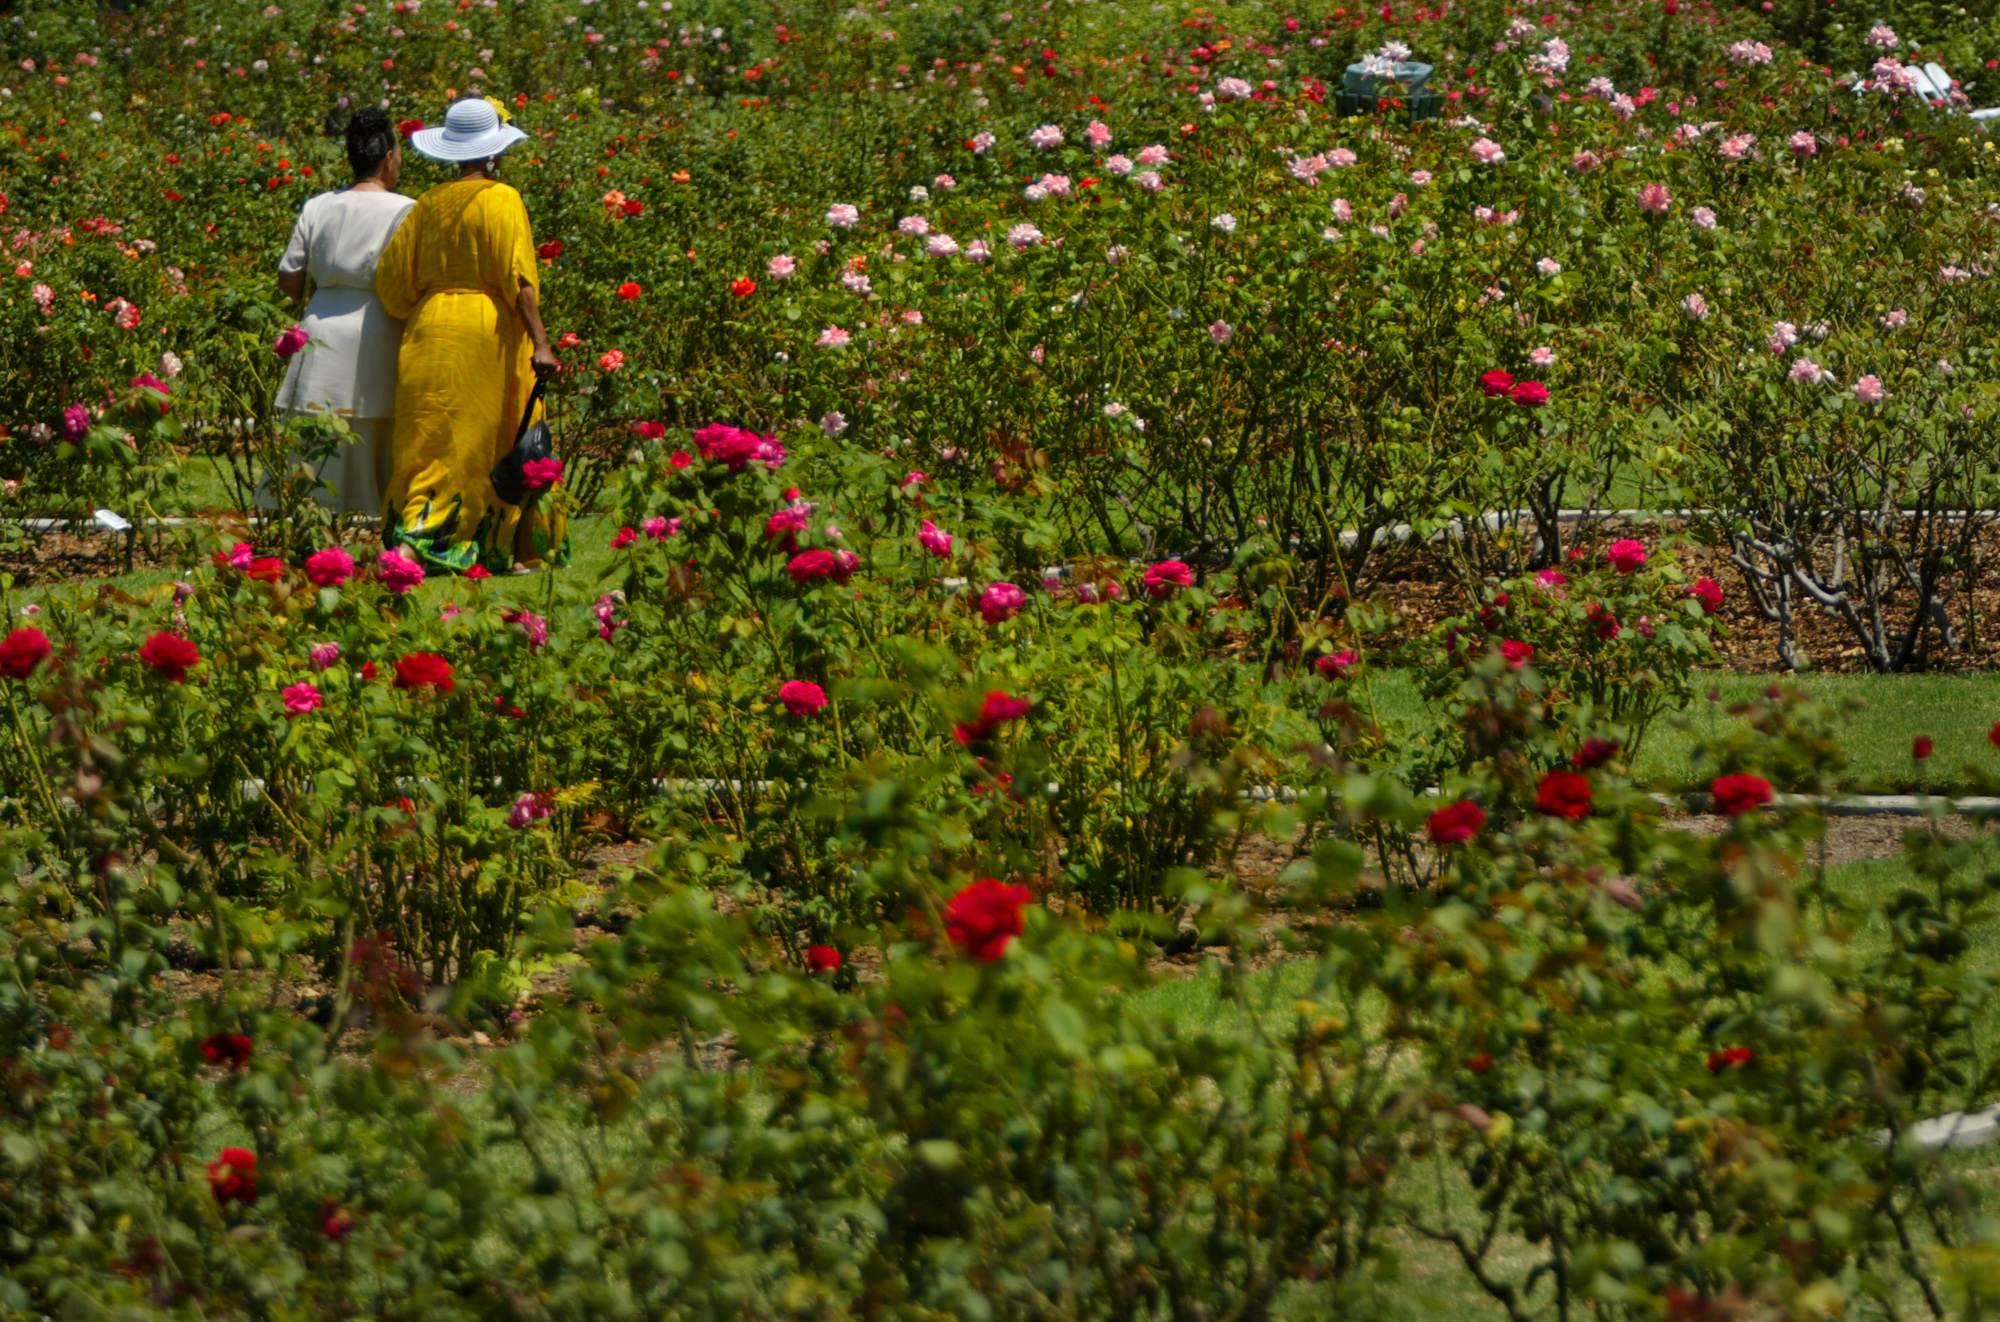 A rose garden with assorted rose varieties. Two people walk on a path in the garden.